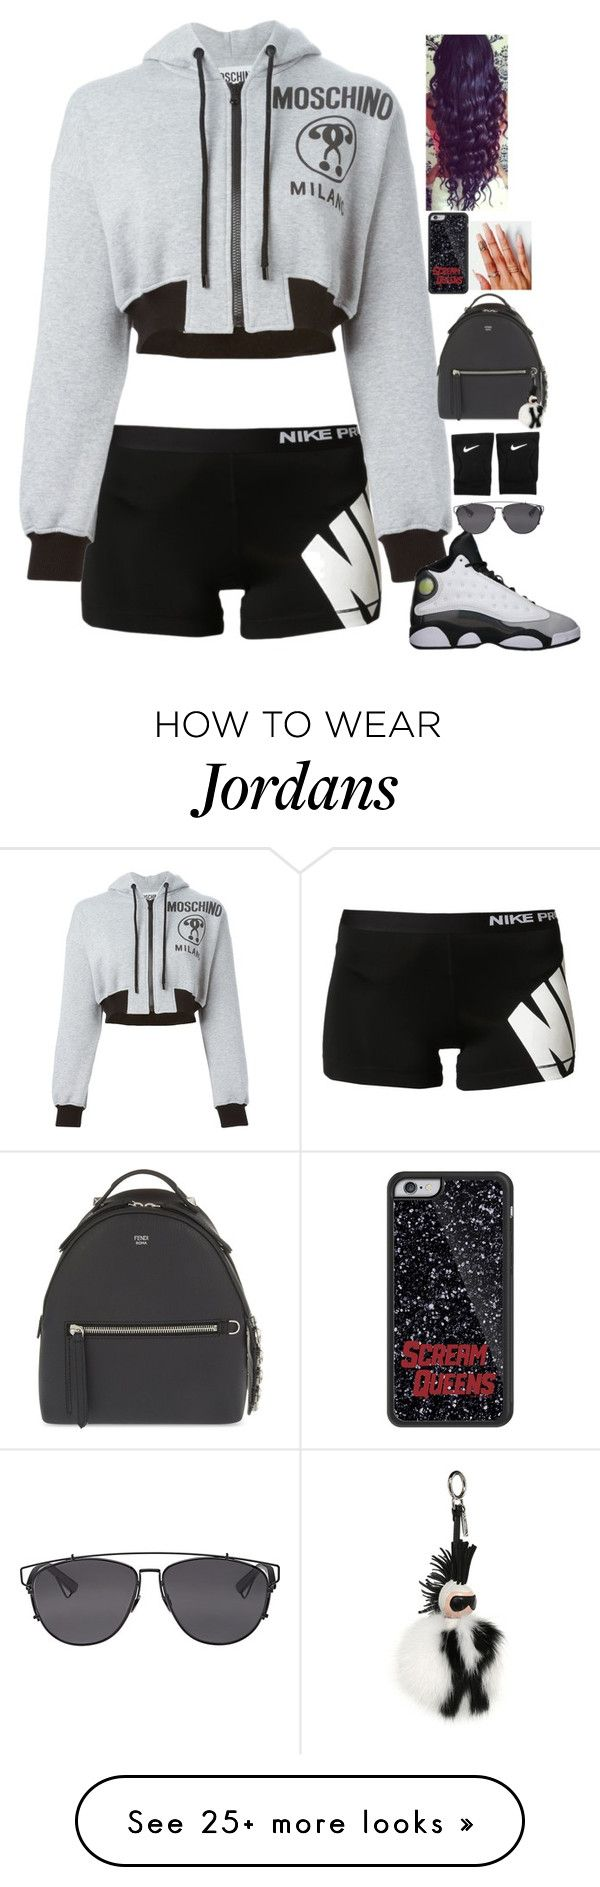 """Untitled #246"" by madeforfashion on Polyvore featuring NIKE, Moschino, Retrò, Fendi and Christian Dior"